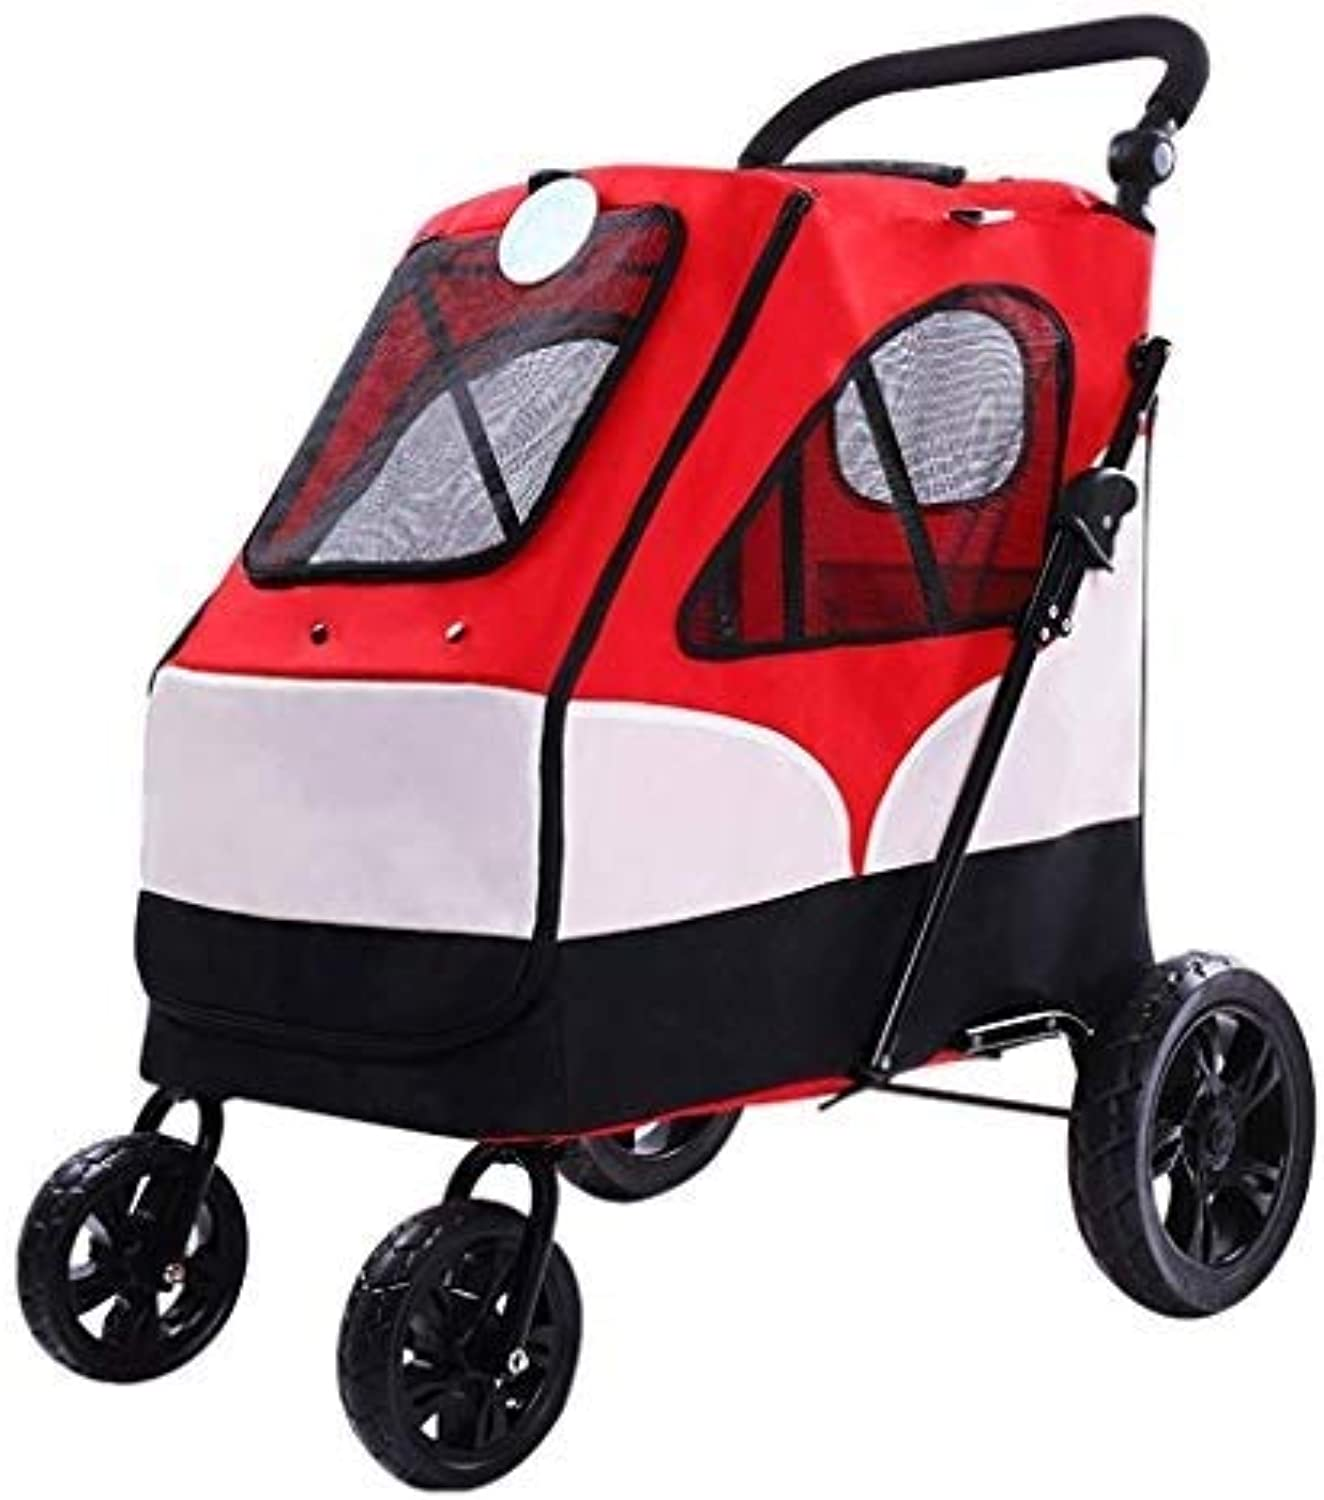 QNJM MultiFunction FourWheeled Pet Stroller, Folding Large Capacity Cat And Dog Universal FourSeason Pet Bracket (Red)